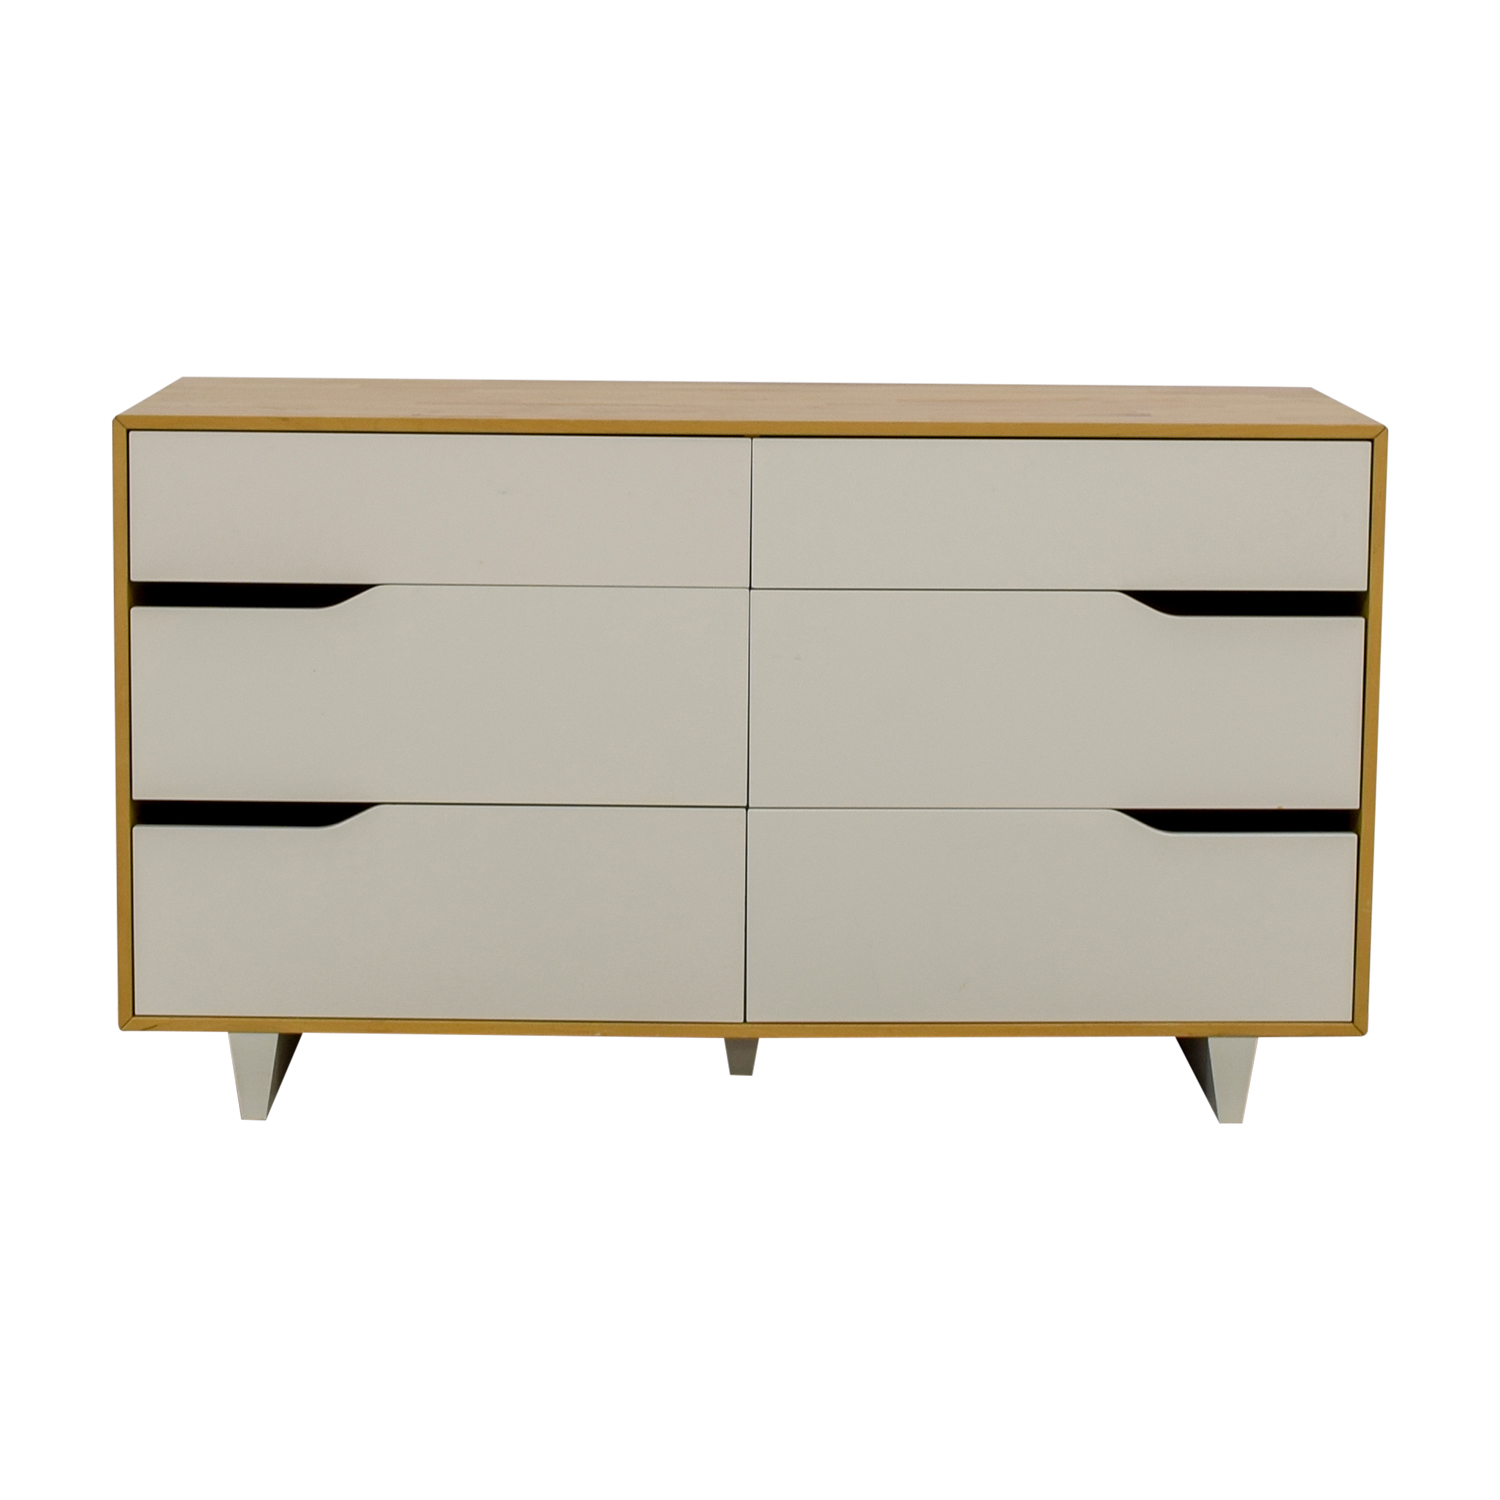 Ikea Mandal White And Natural Six Drawer Dresser Dressers